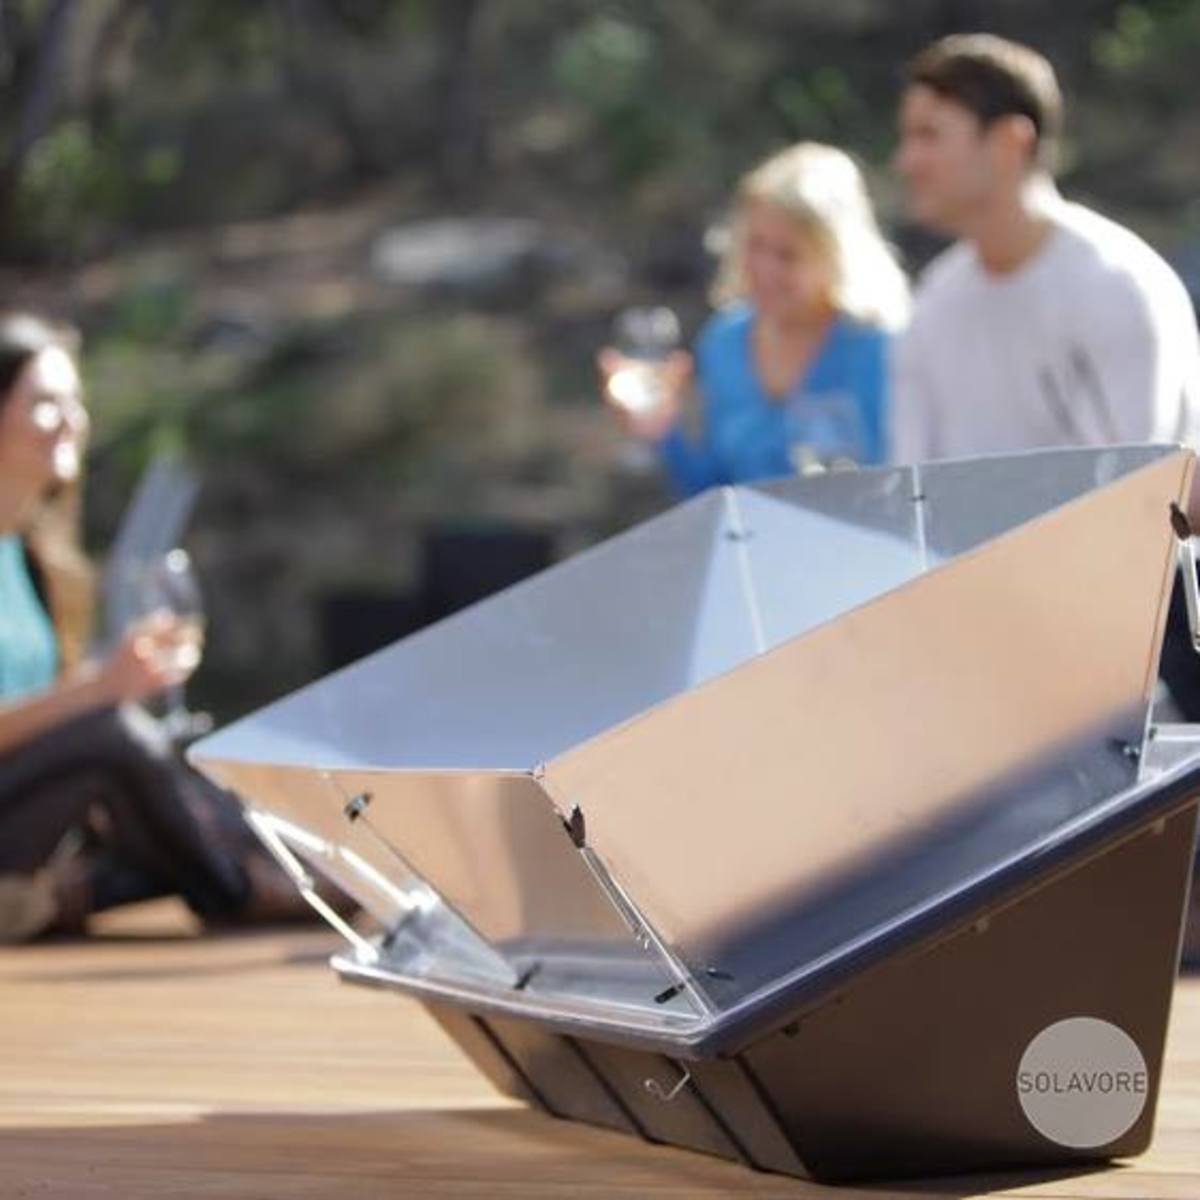 The Solavore solar oven is great for cooking outdoors.